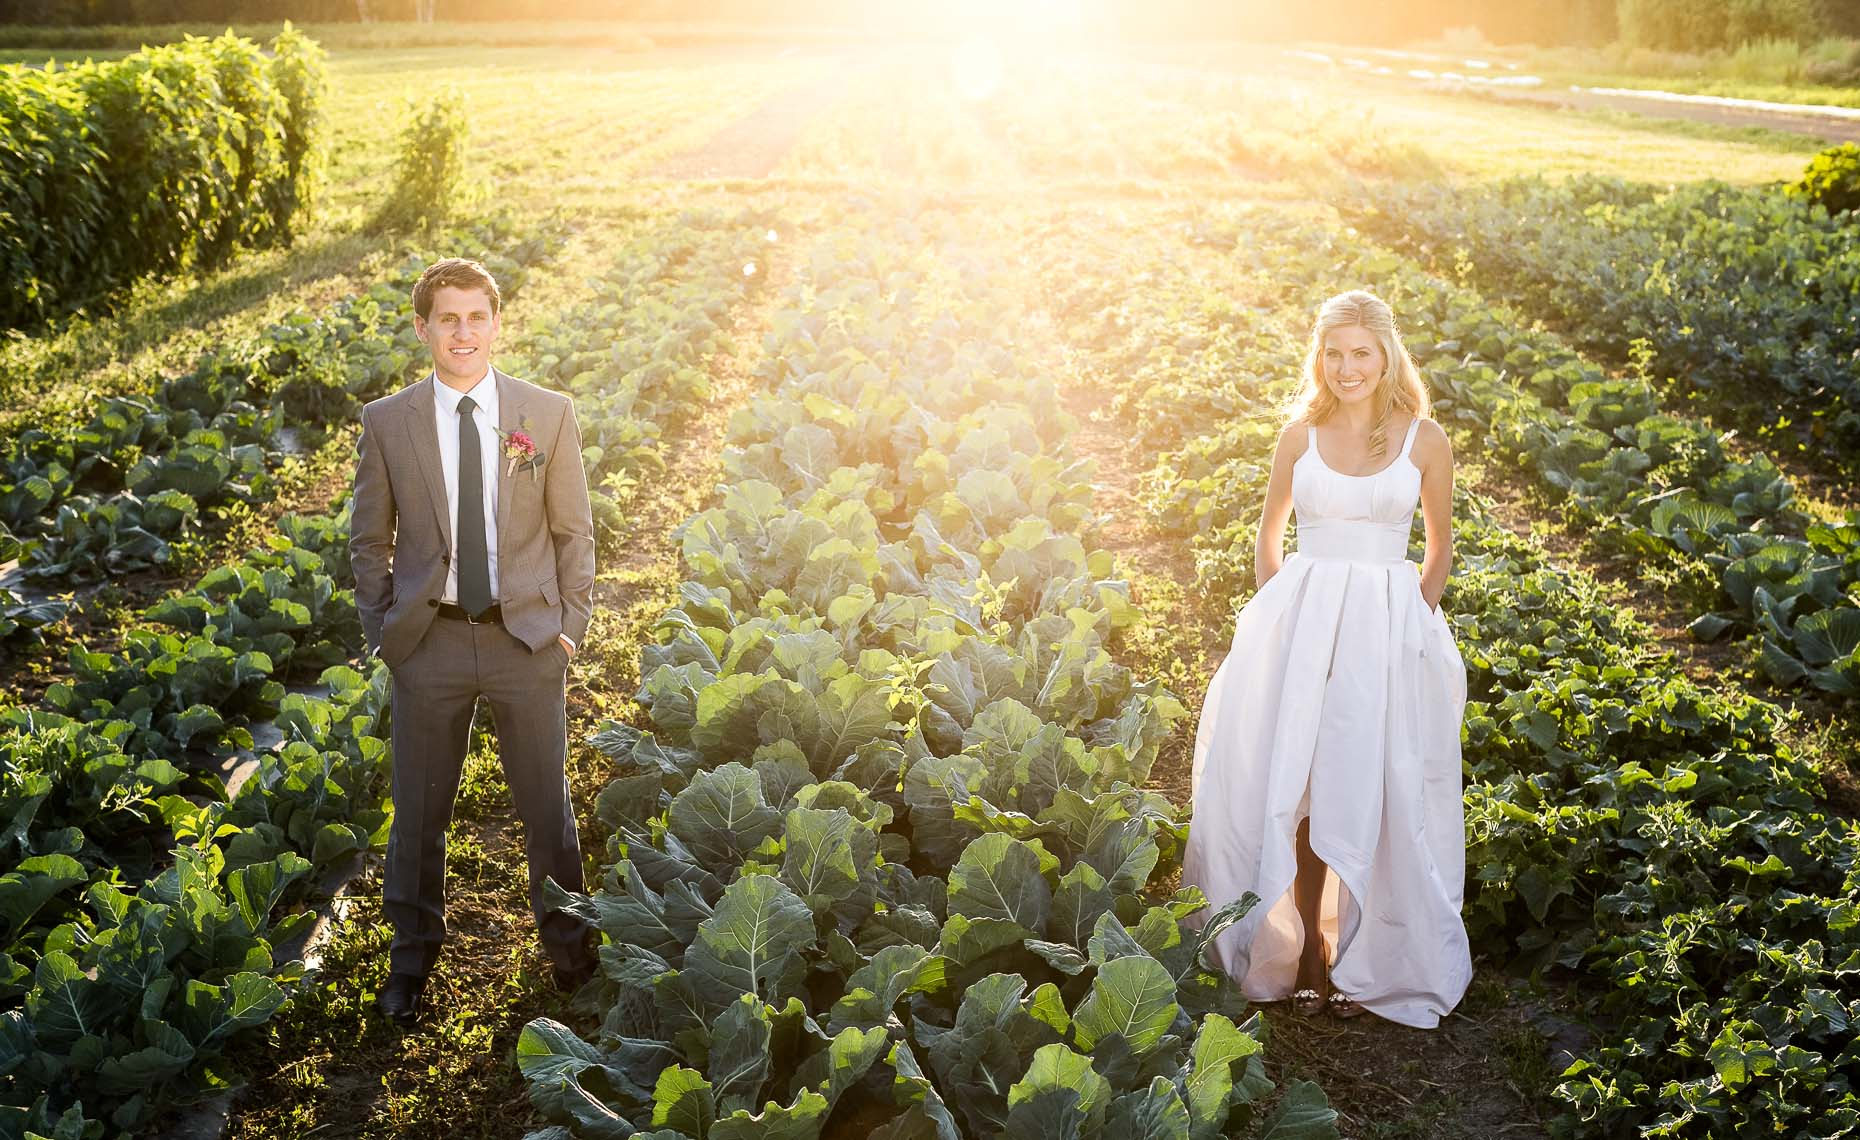 Vintage style organic farm wedding near Whistler.